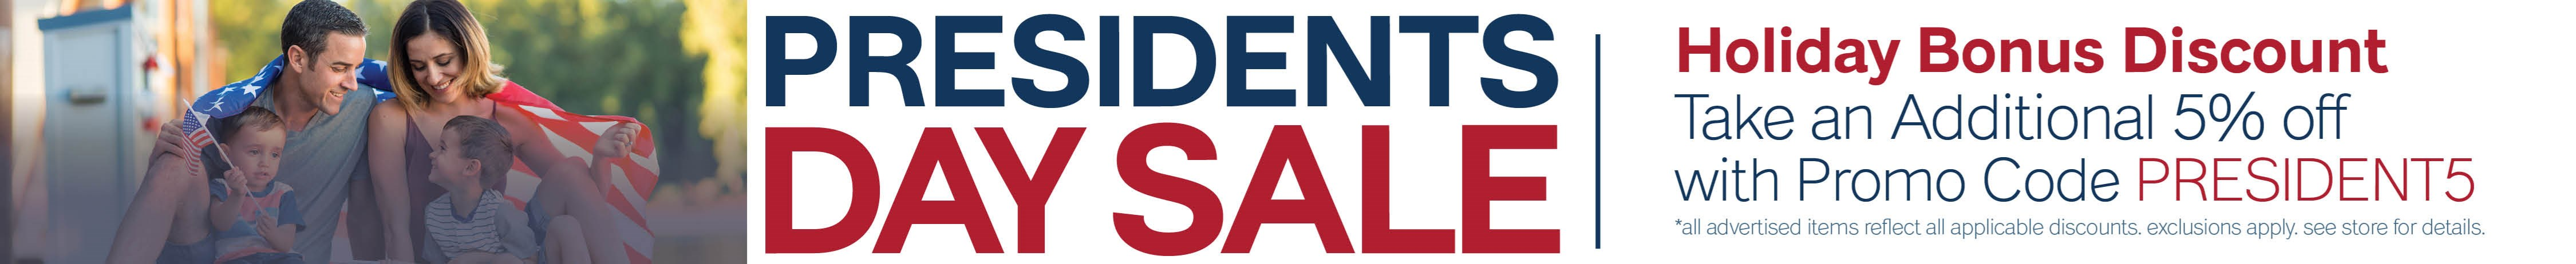 Furniture & ApplianceMart Presidents Day Weekend